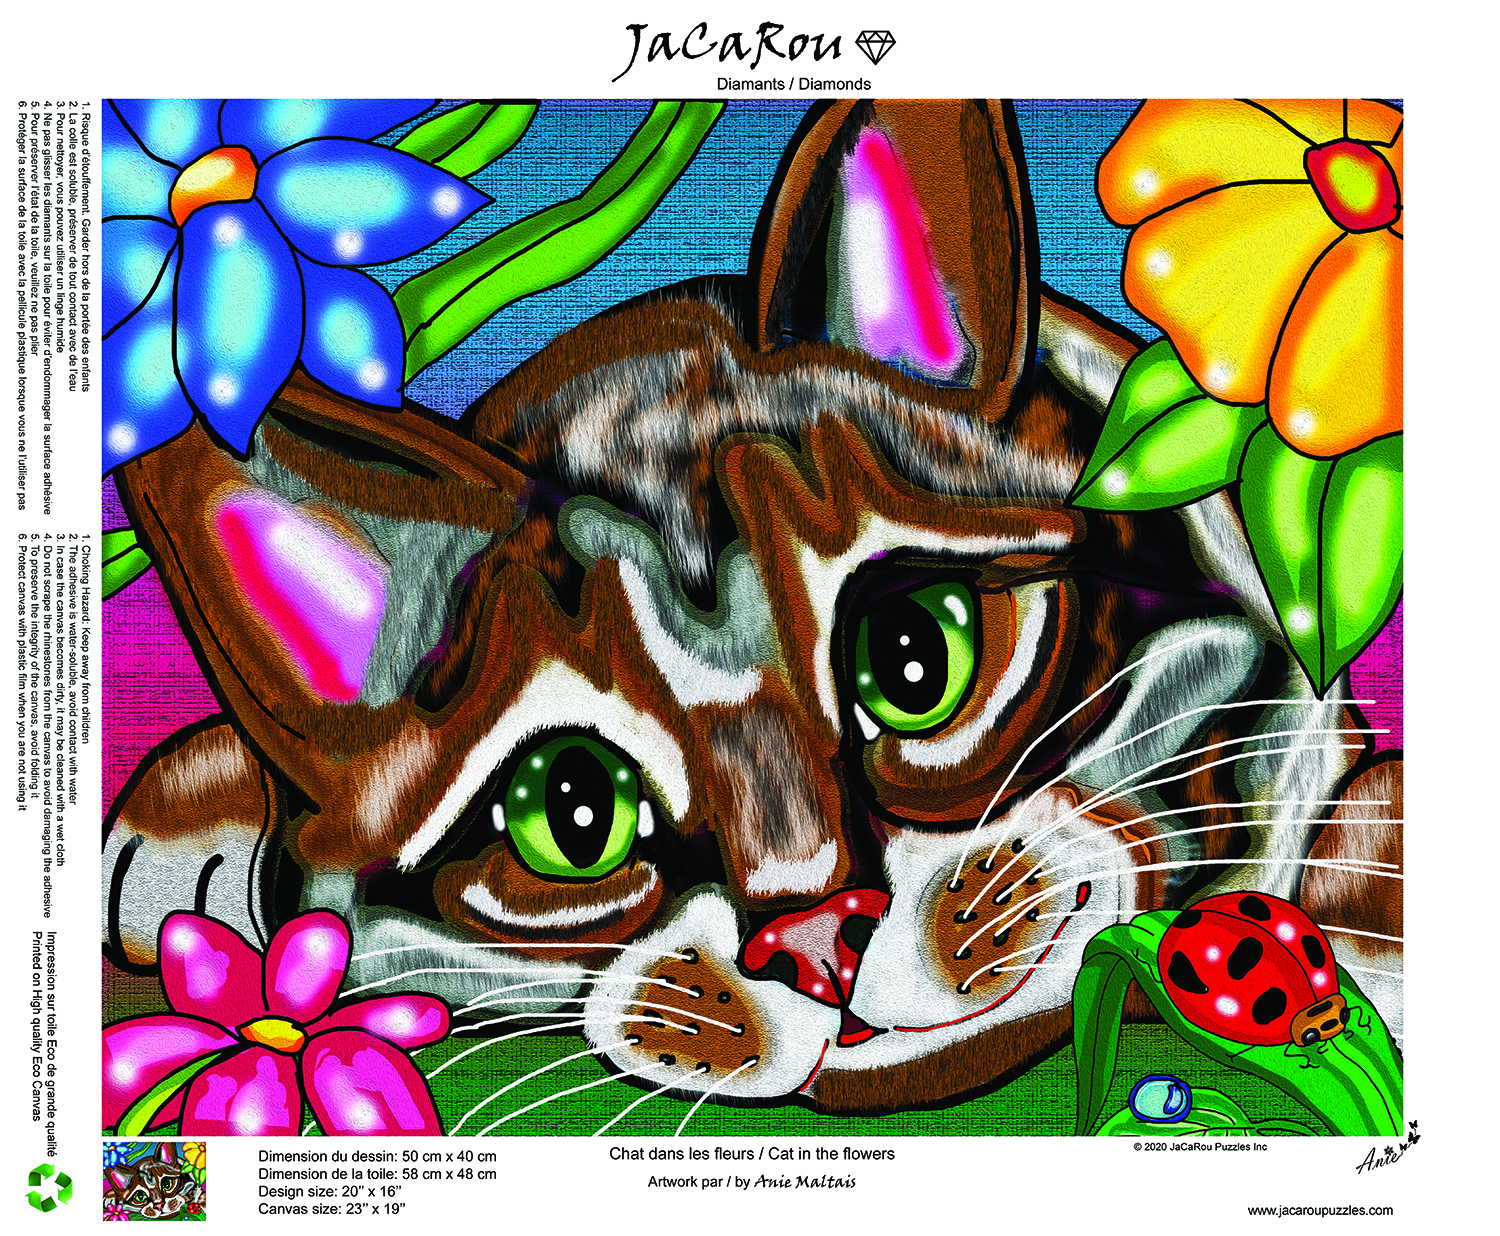 CAT IN THE FLOWERS 20 X 16 Diamond painting